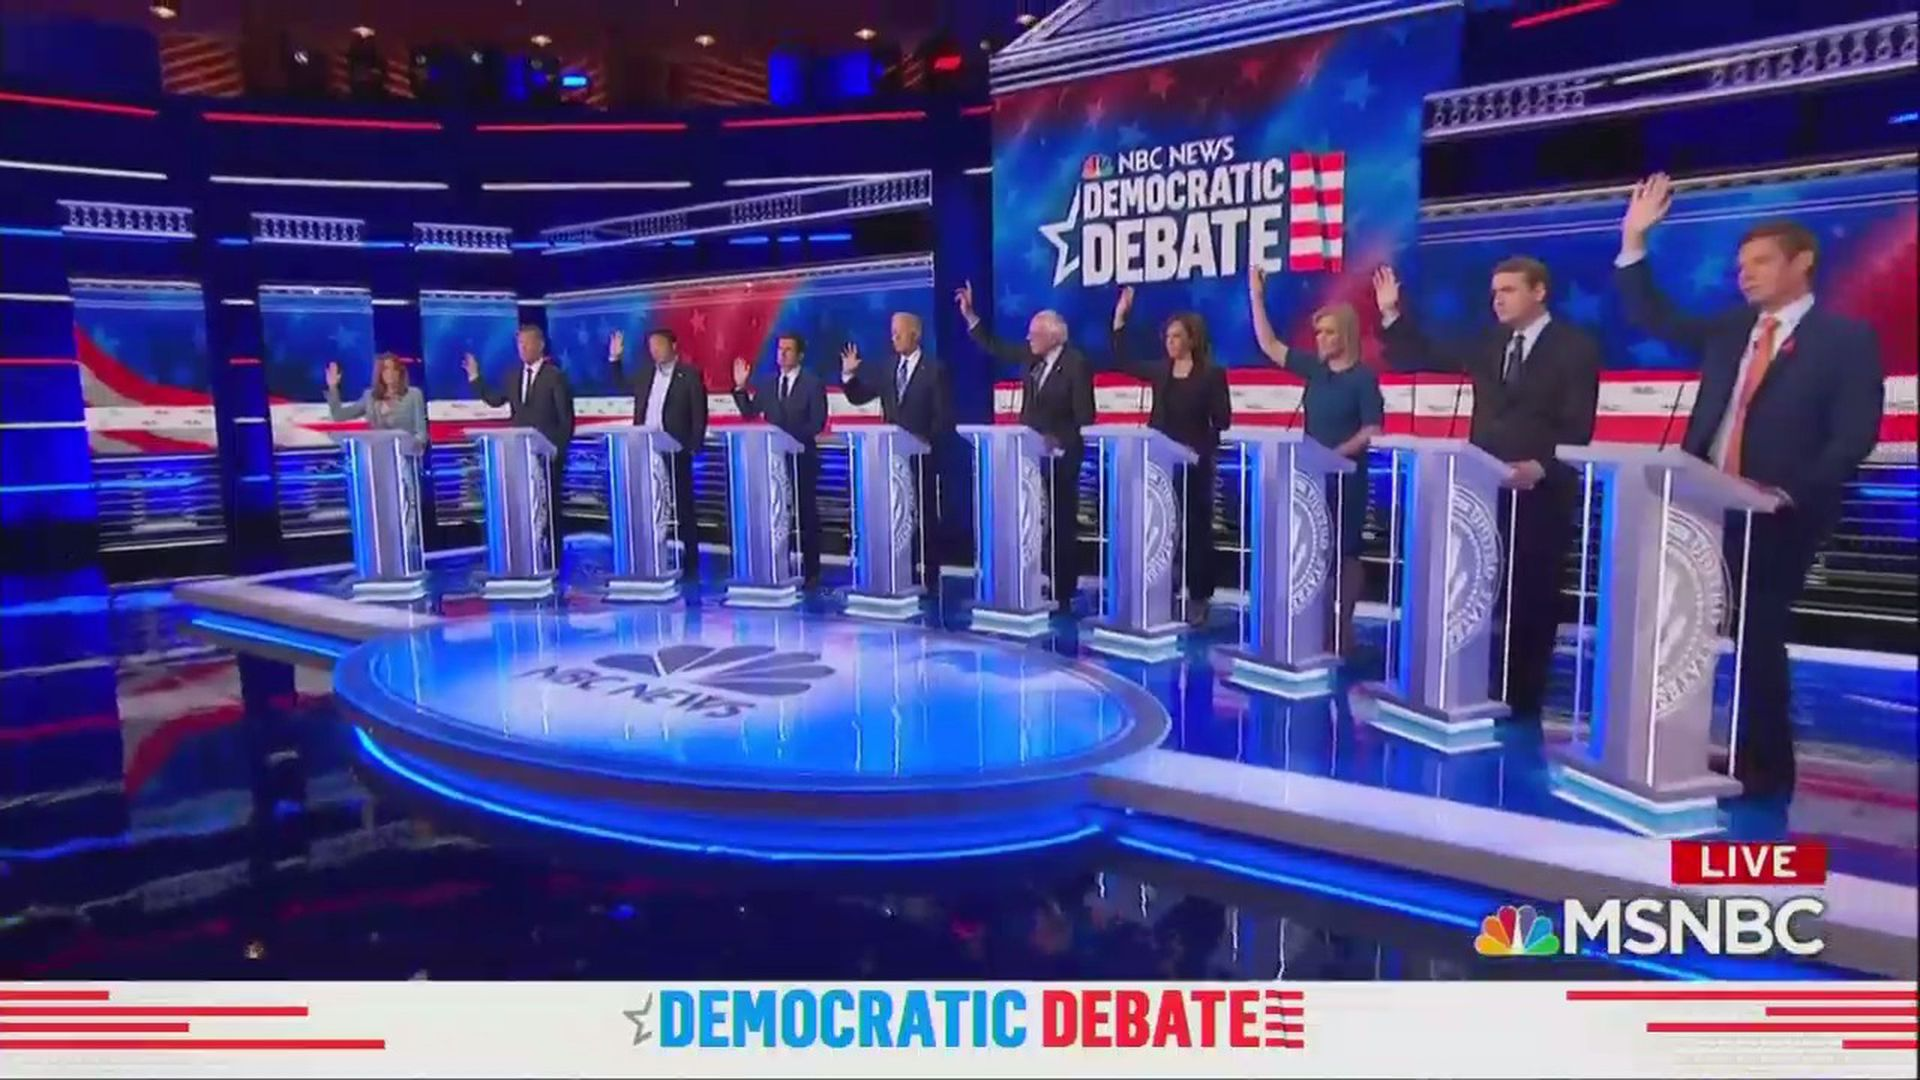 2020 Democratic candidates raise their hands on the debate stage supporting healthcare for undocumented migrants